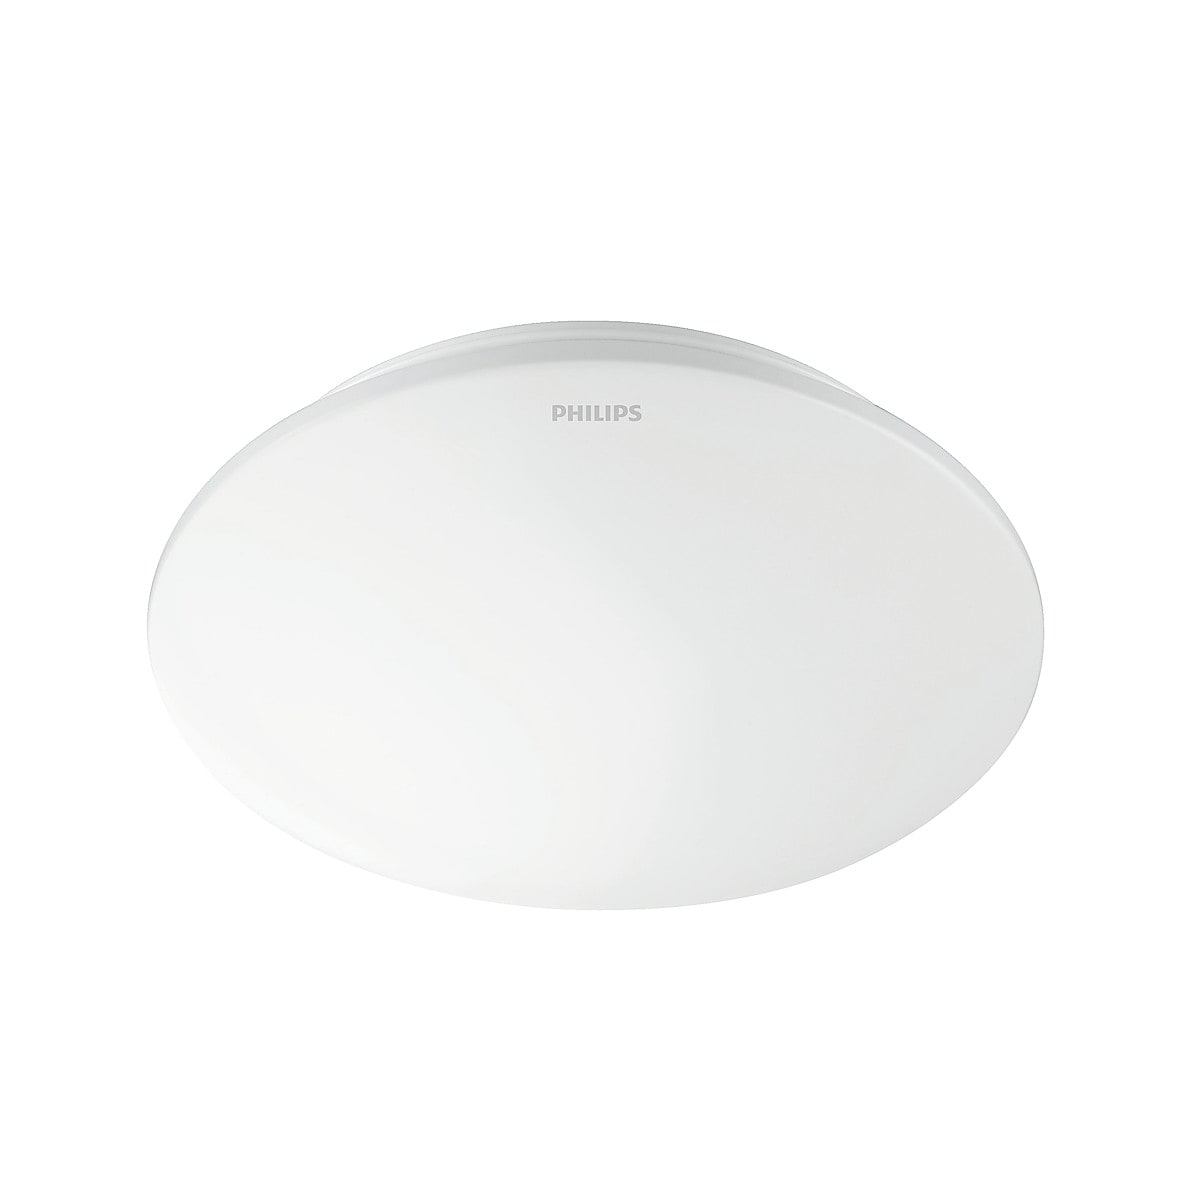 Takplafond Moire Philips 3336131X0